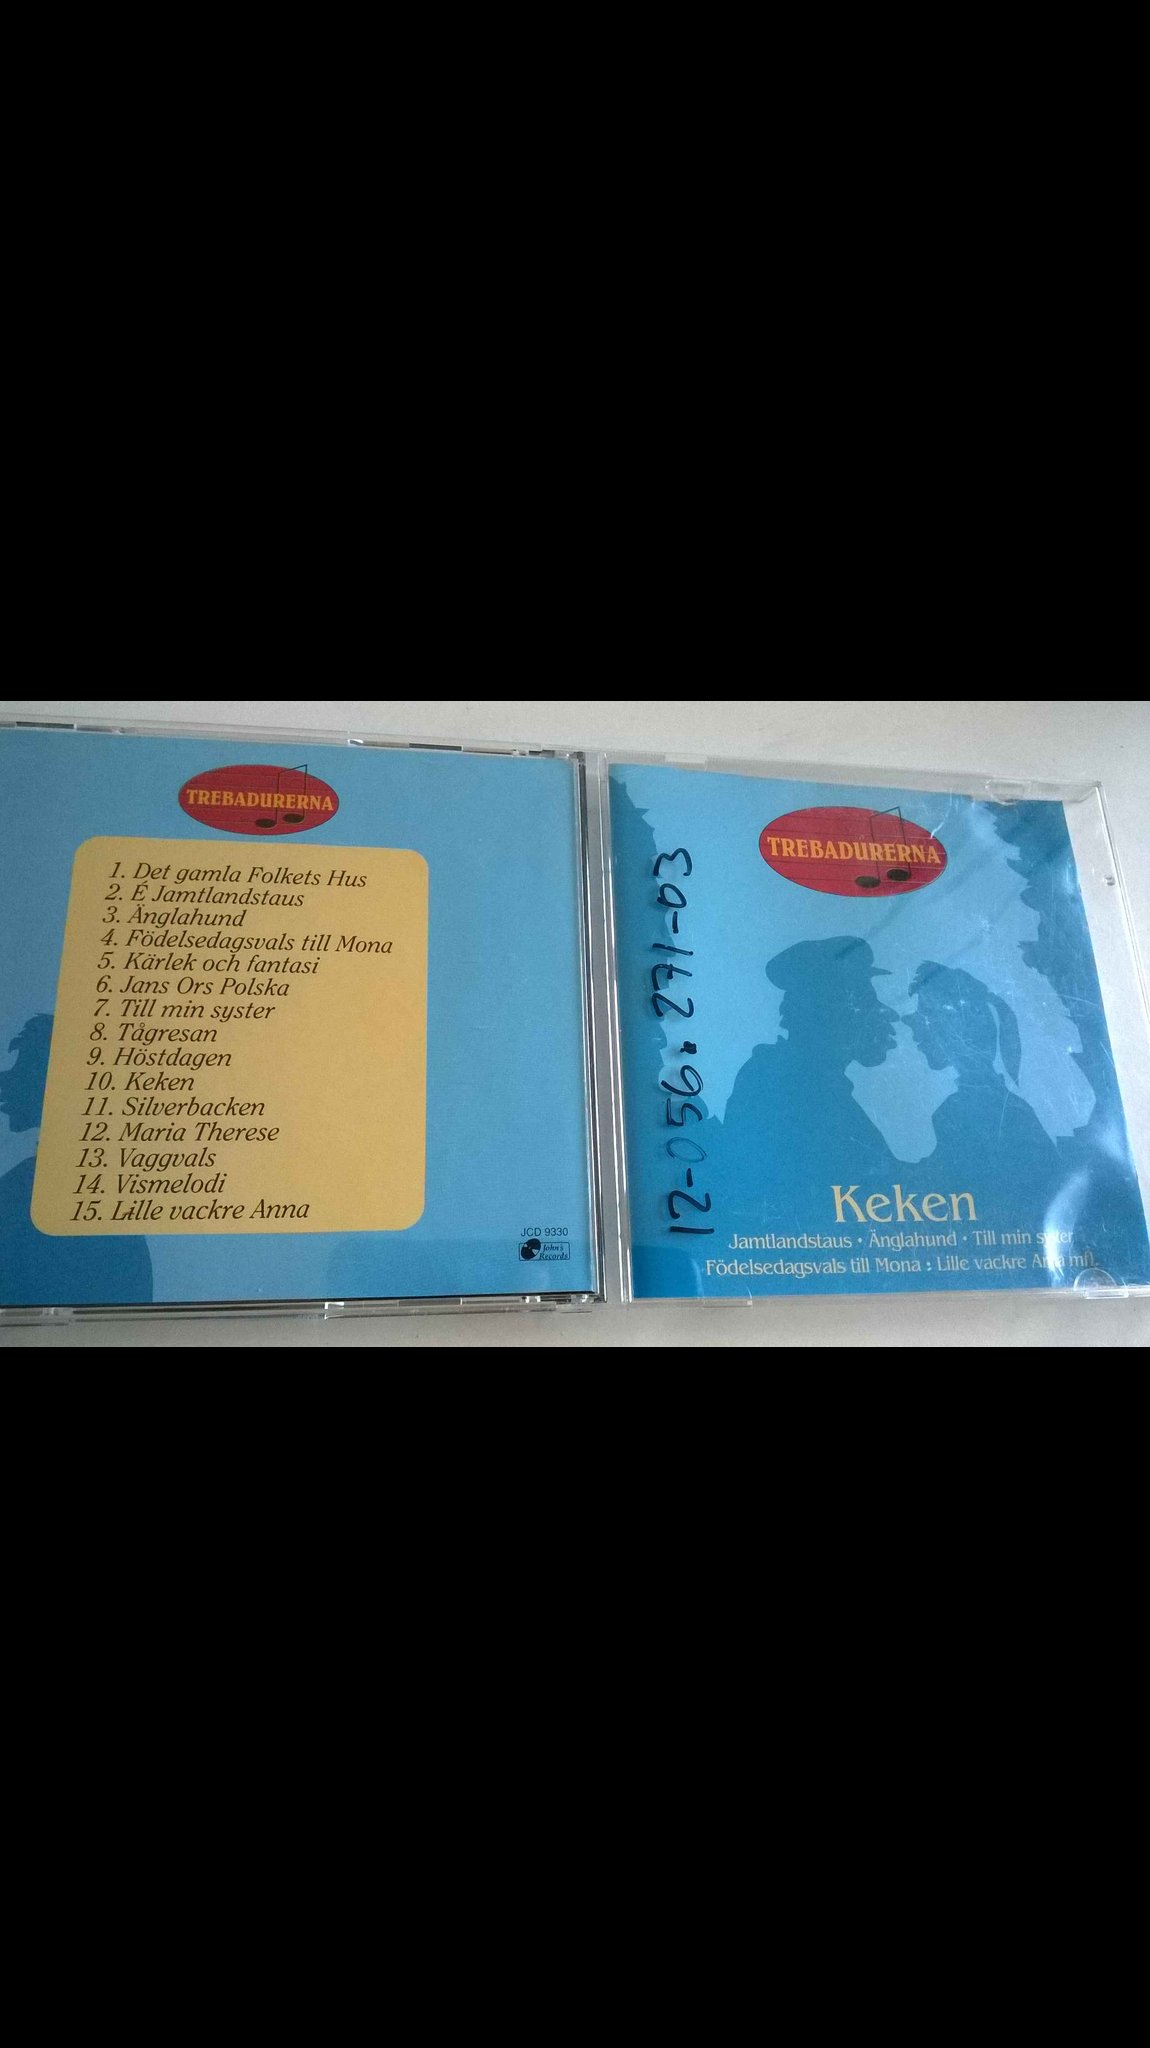 Trebadurerna - Keken, CD, very rare!